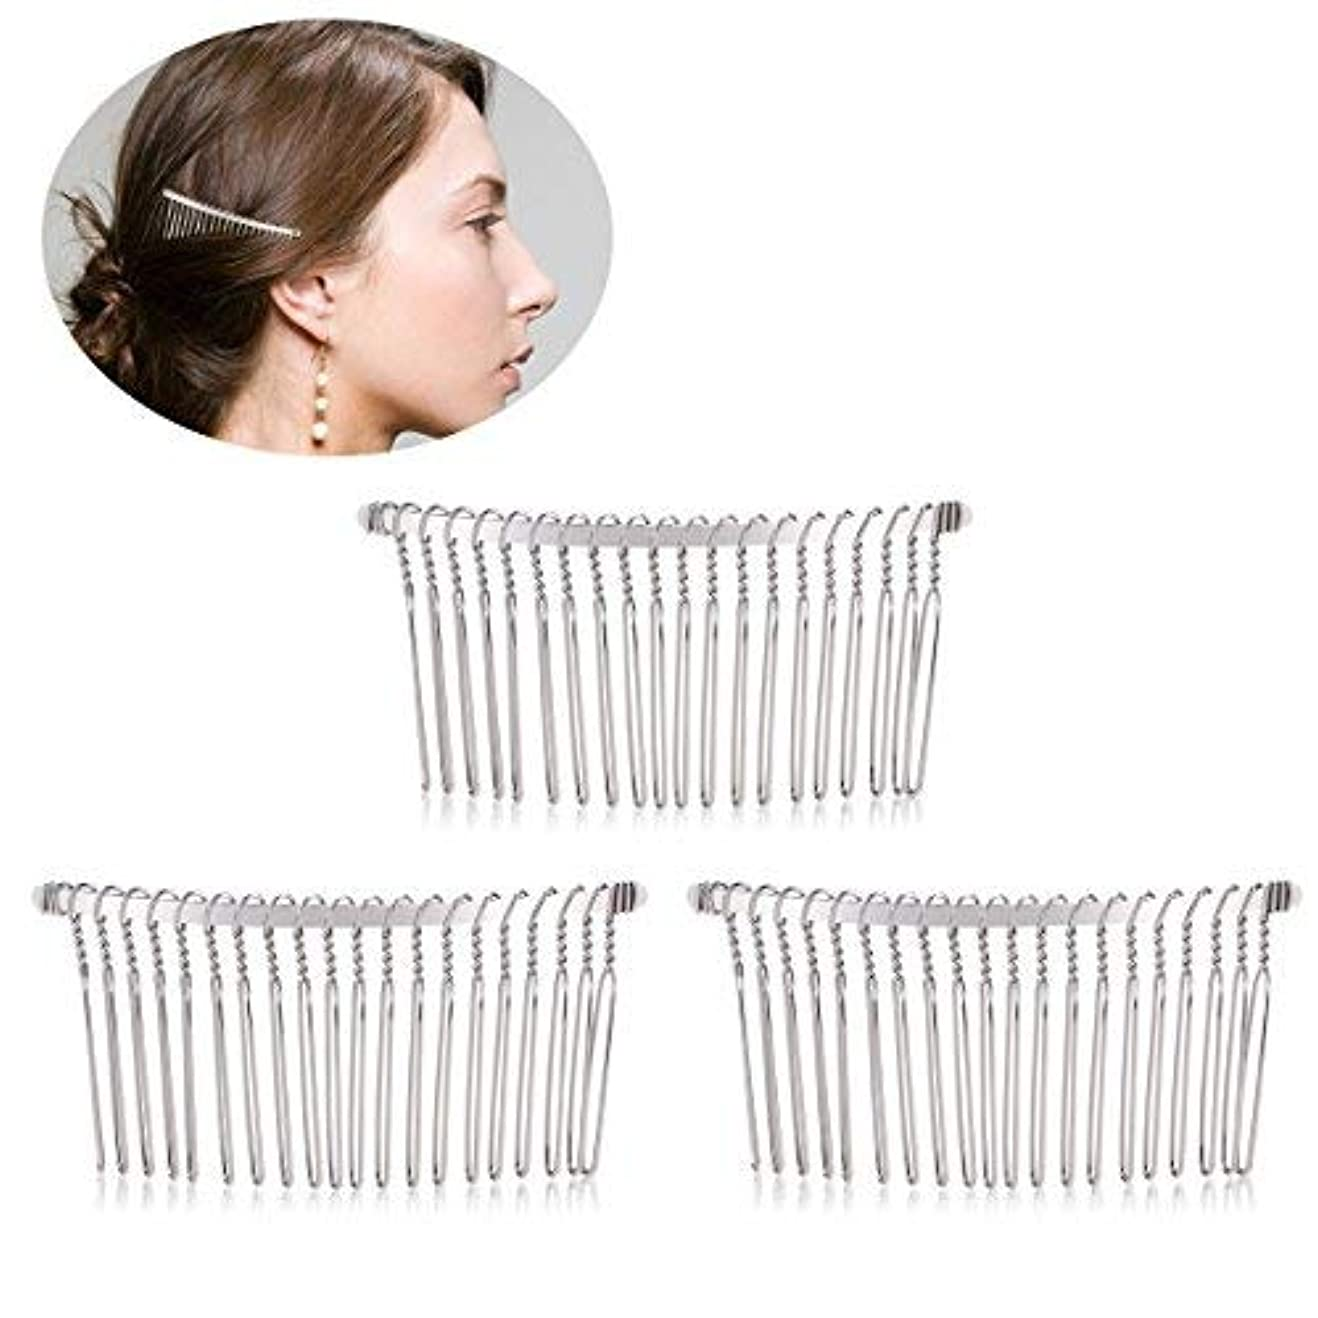 人気無法者圧倒的Pixnor 3pcs 7.8cm 20 Teeth Fancy DIY Metal Wire Hair Clip Combs Bridal Wedding Veil Combs (Silver) [並行輸入品]